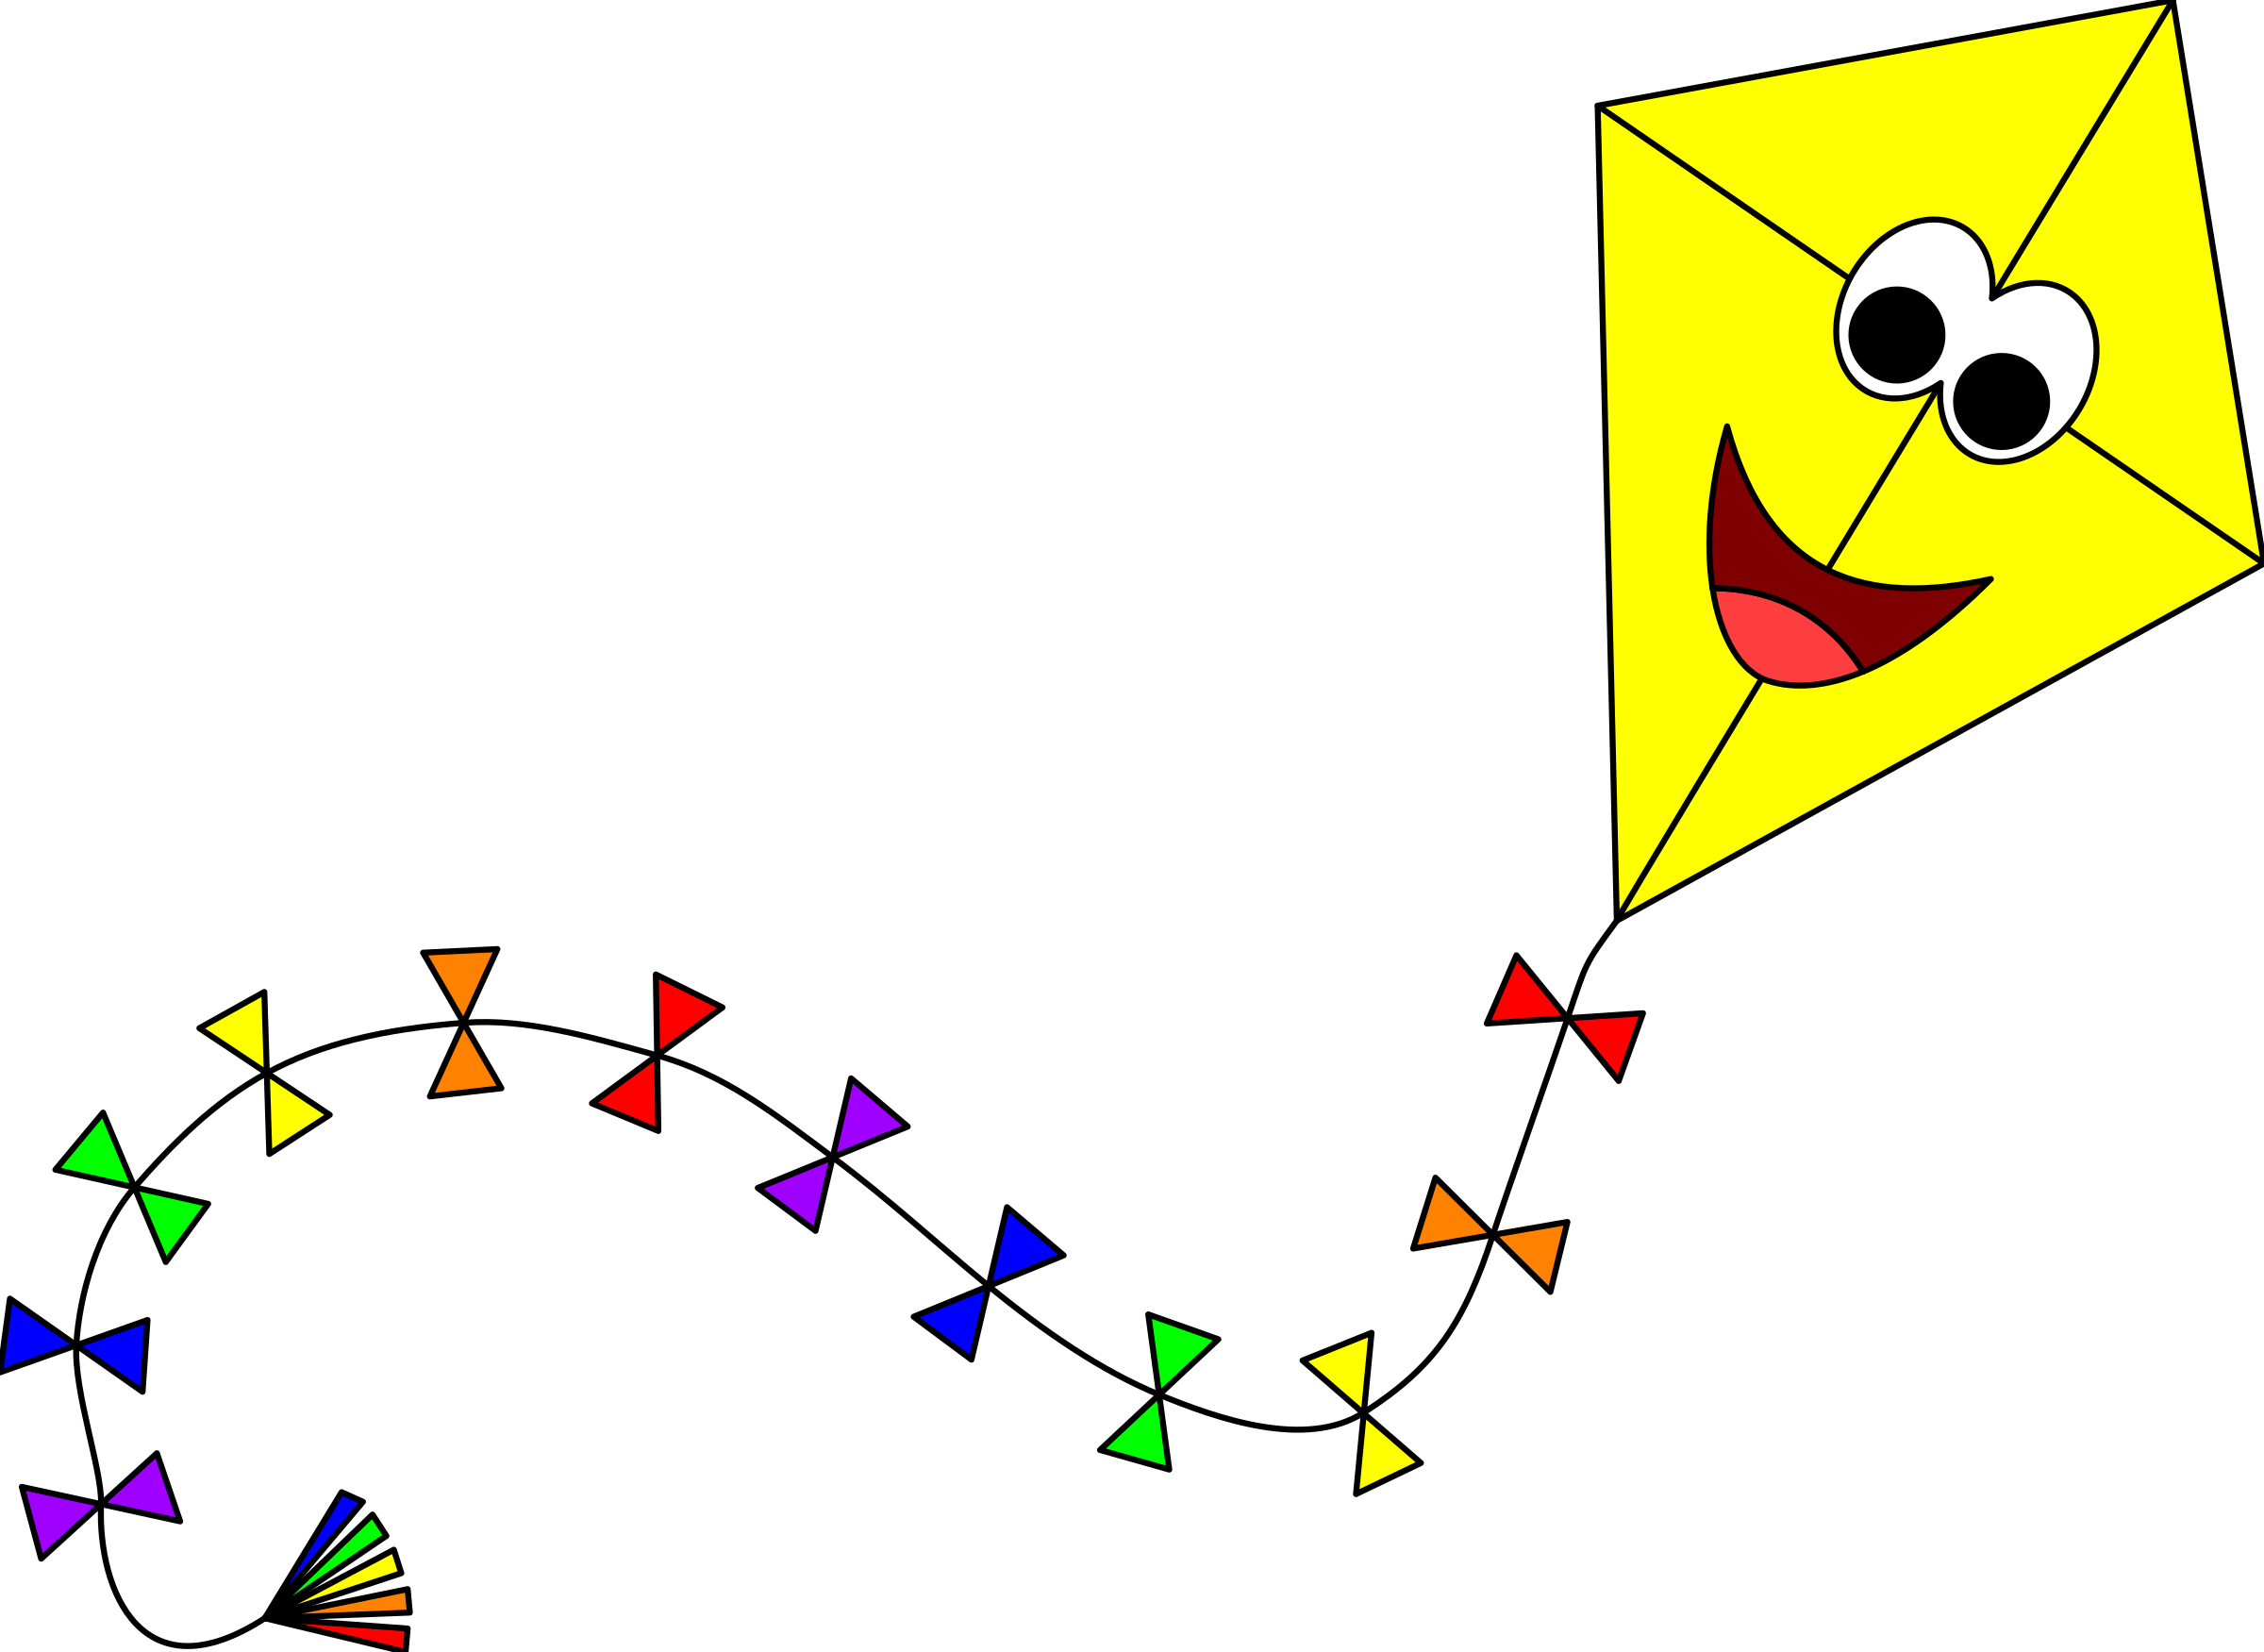 Kite clipart border. Yellow with face icons